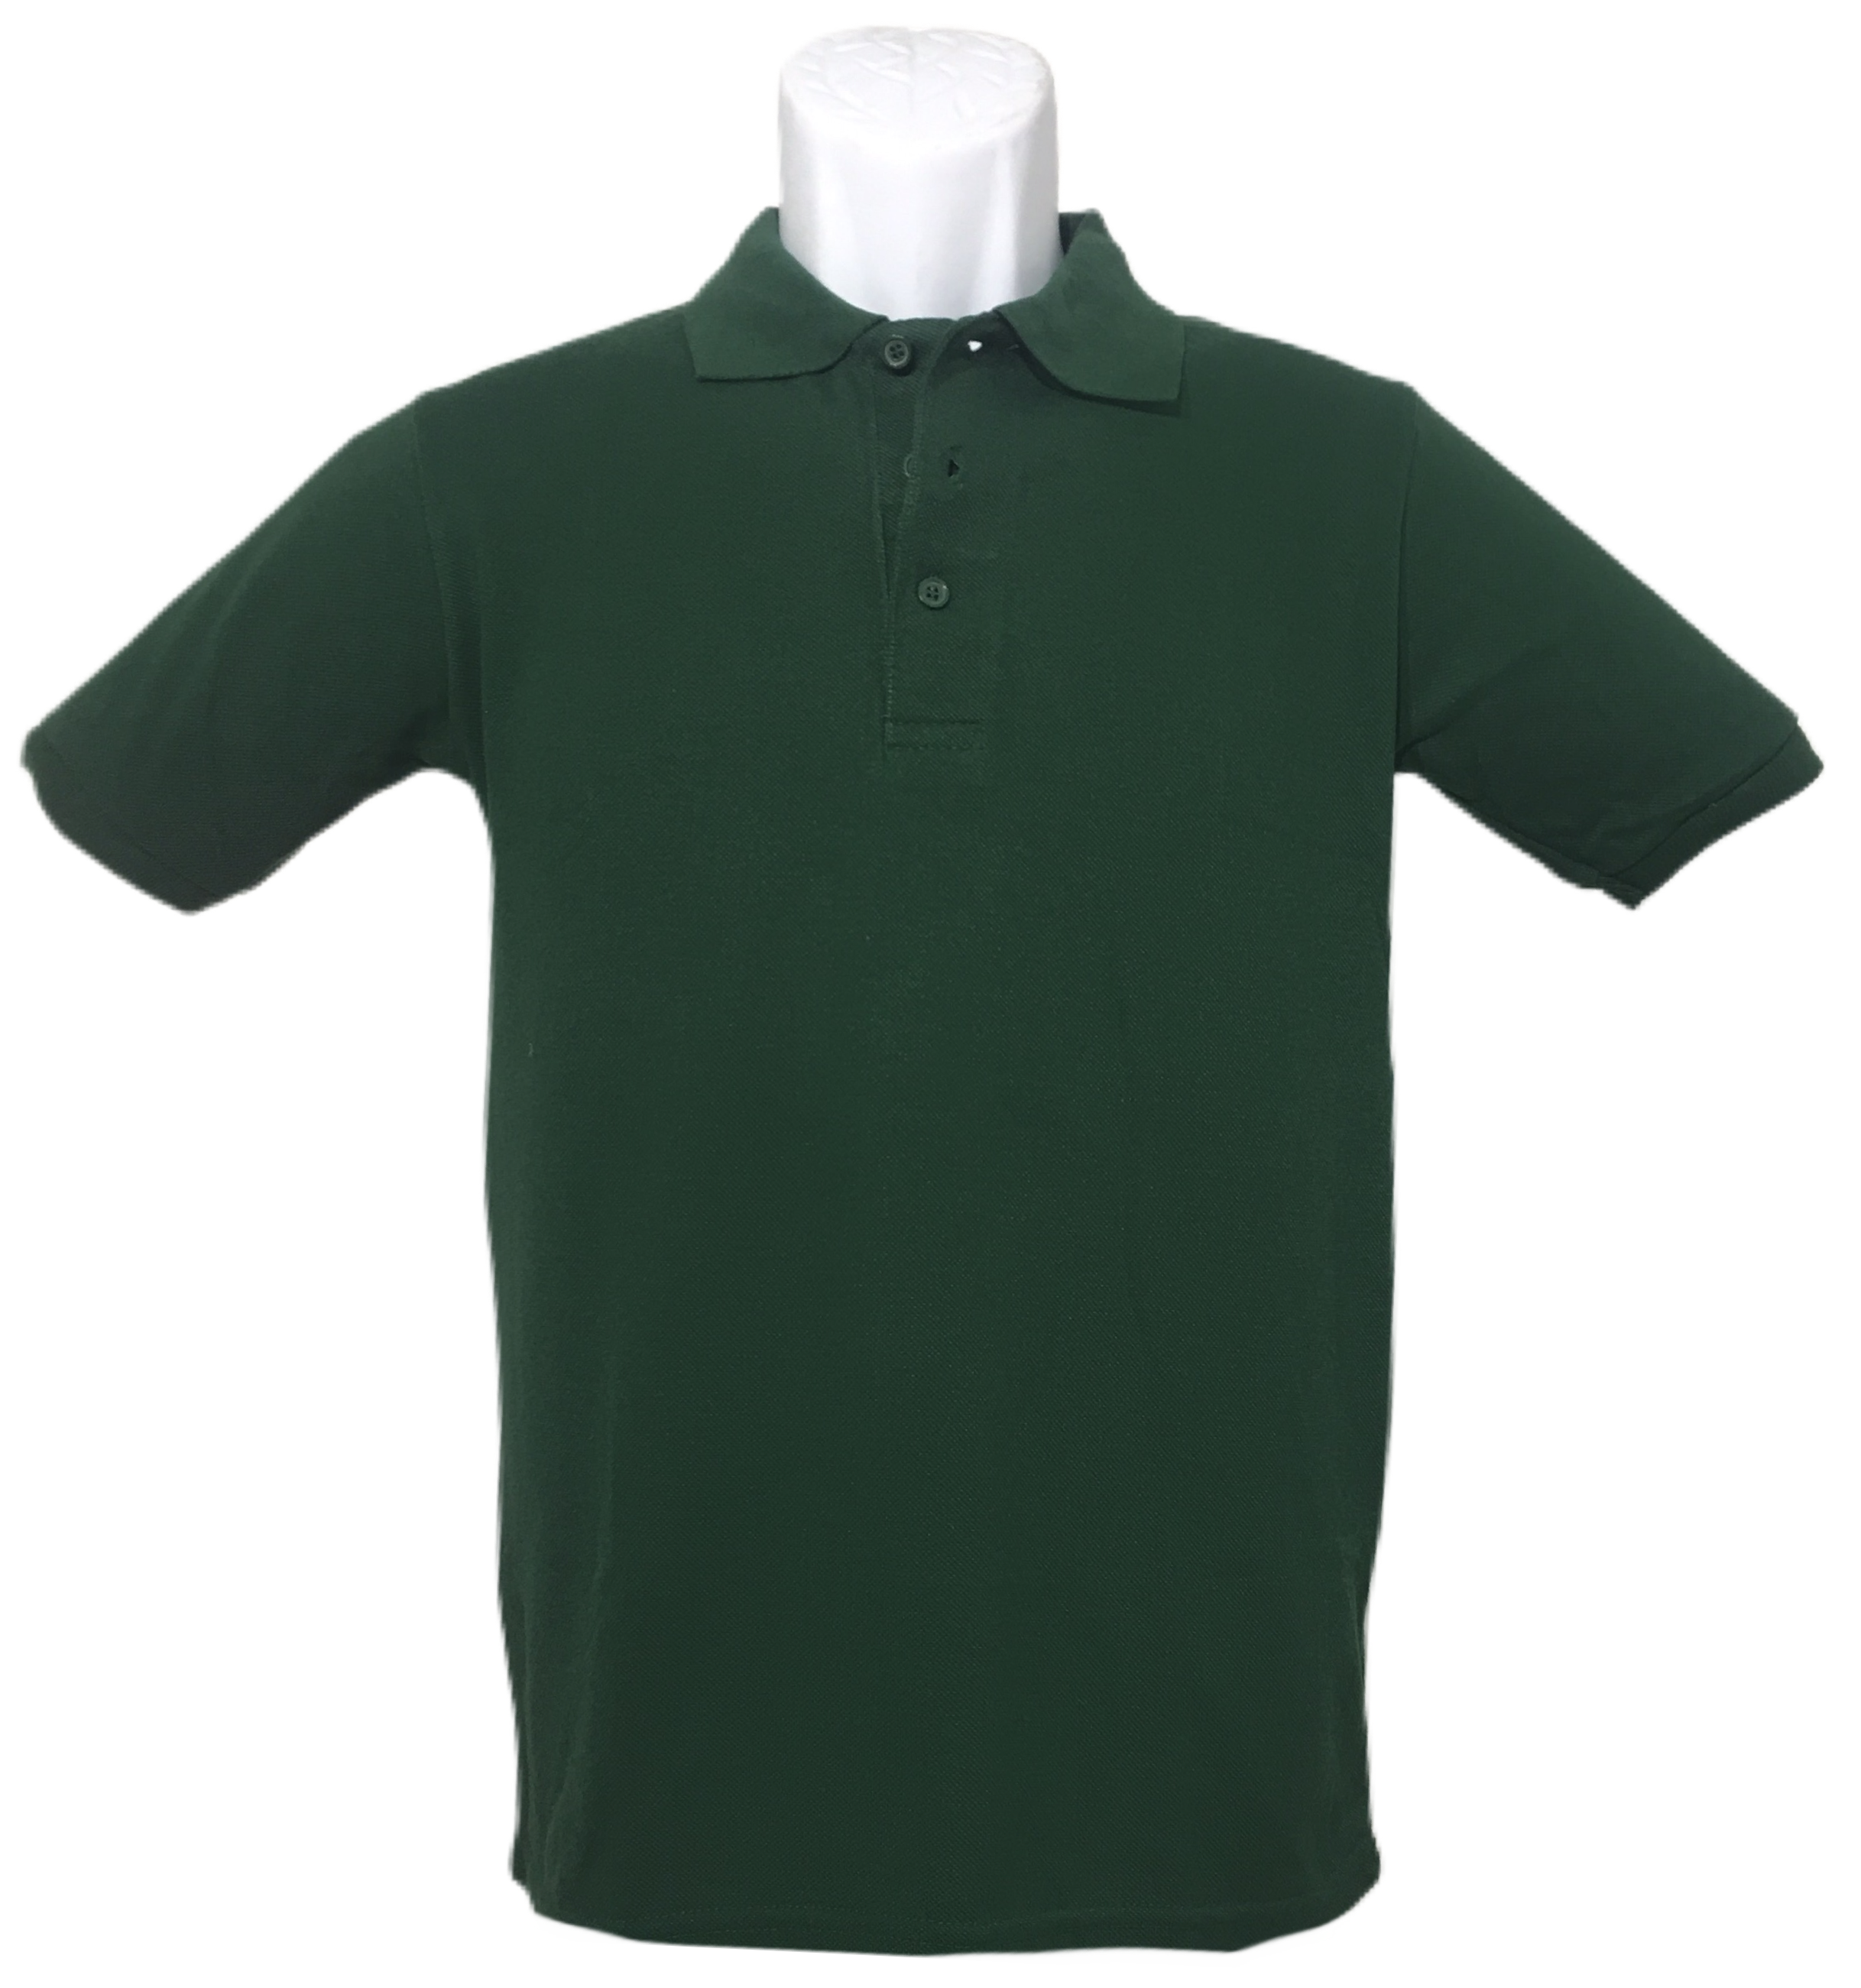 BOYS - VALUE LINE - Unisex Polo Relax Fit S/S